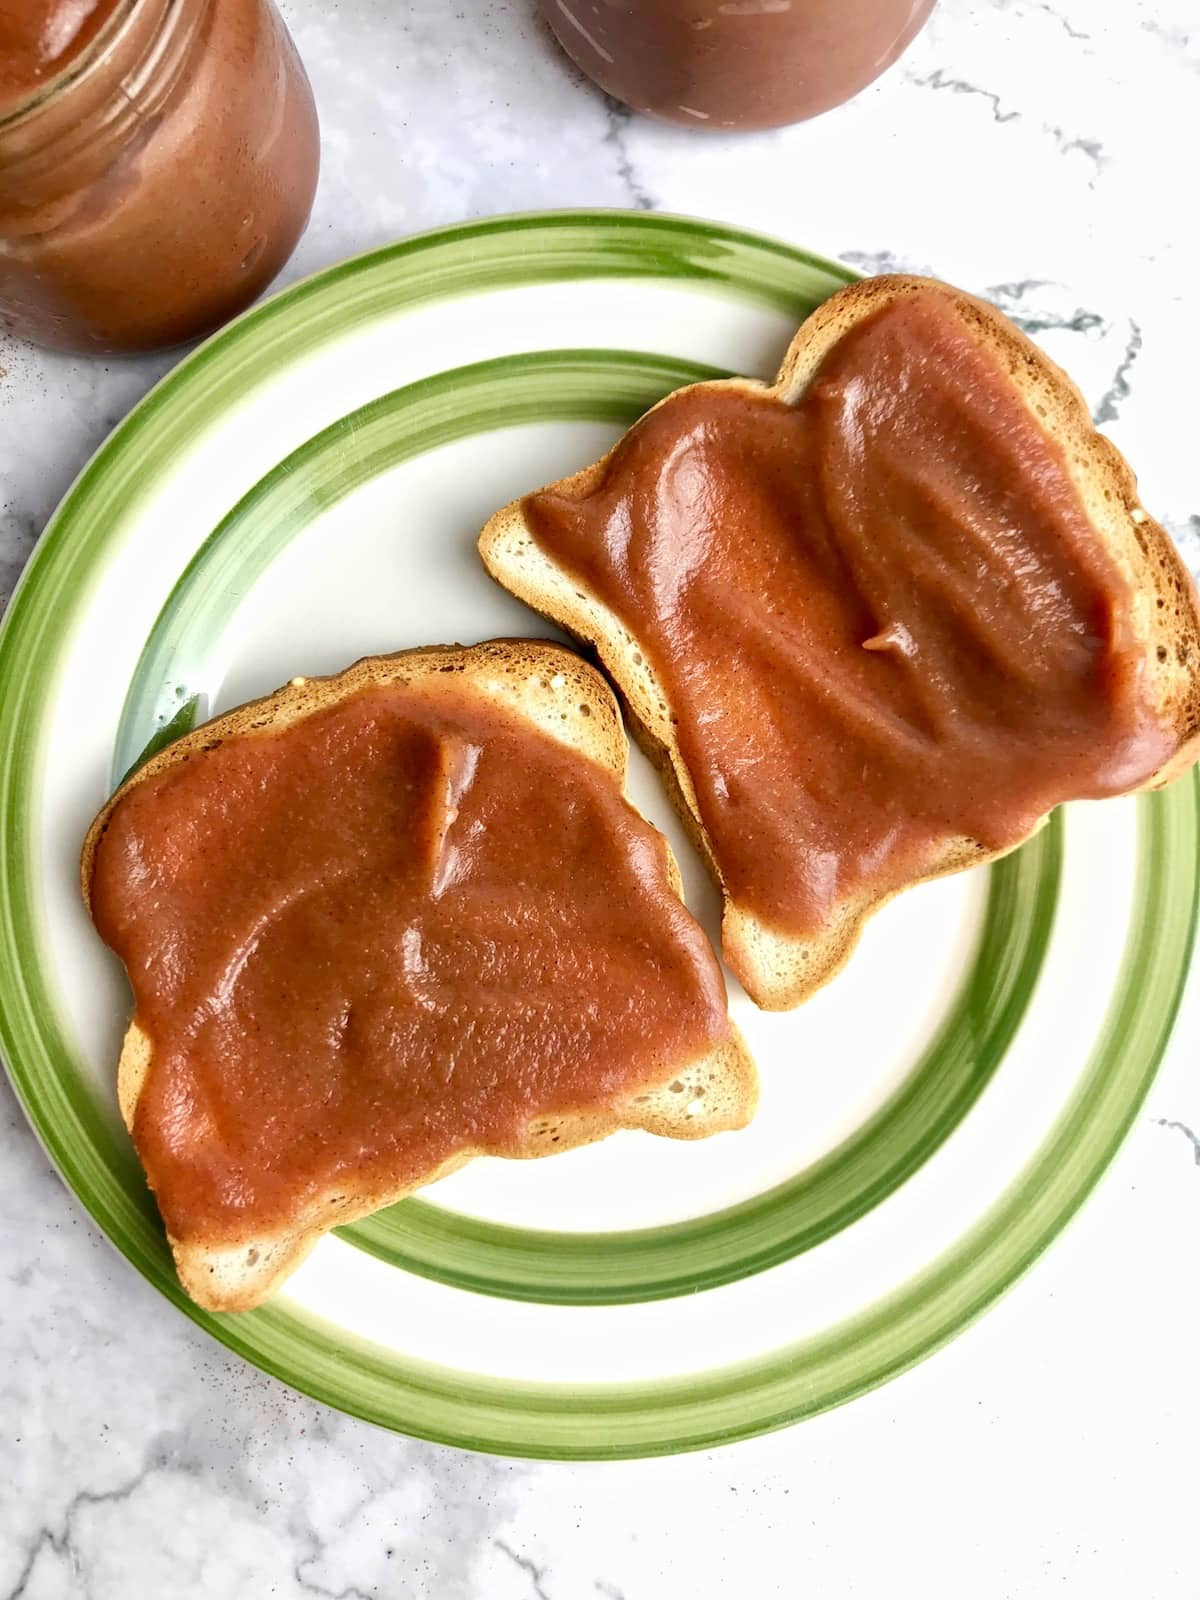 Two pieces of toast topped with apple butter on a white plate with a green rim.